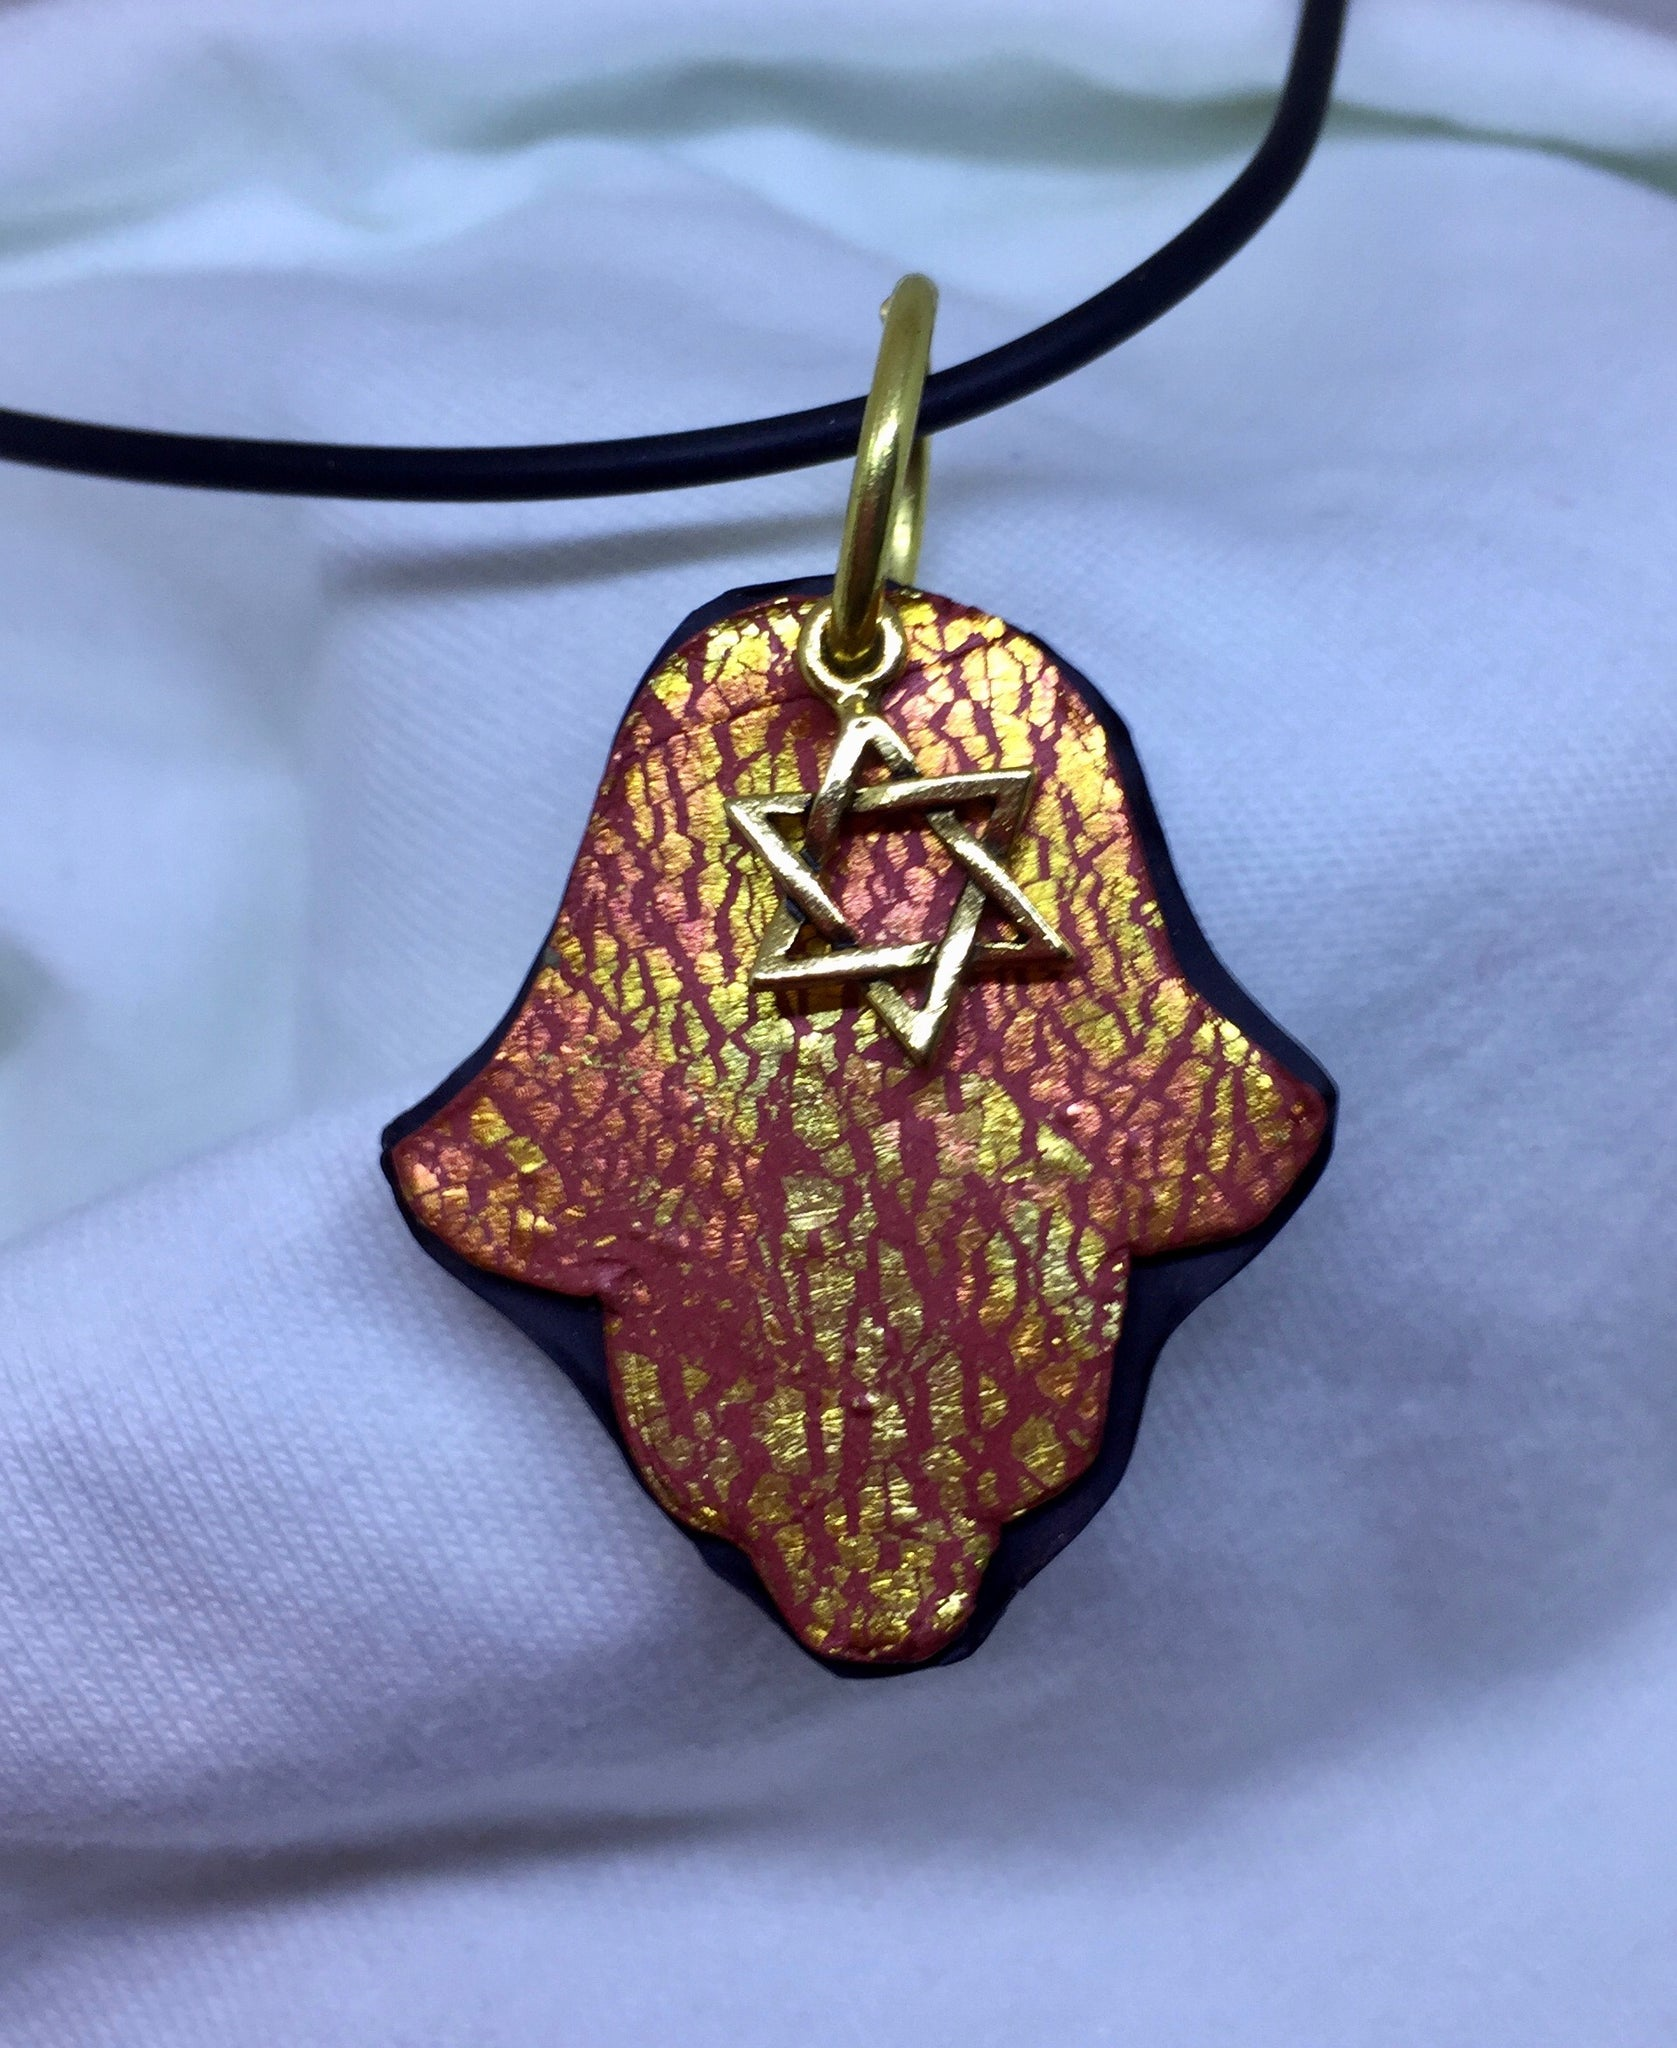 Crackle hamsa with a star